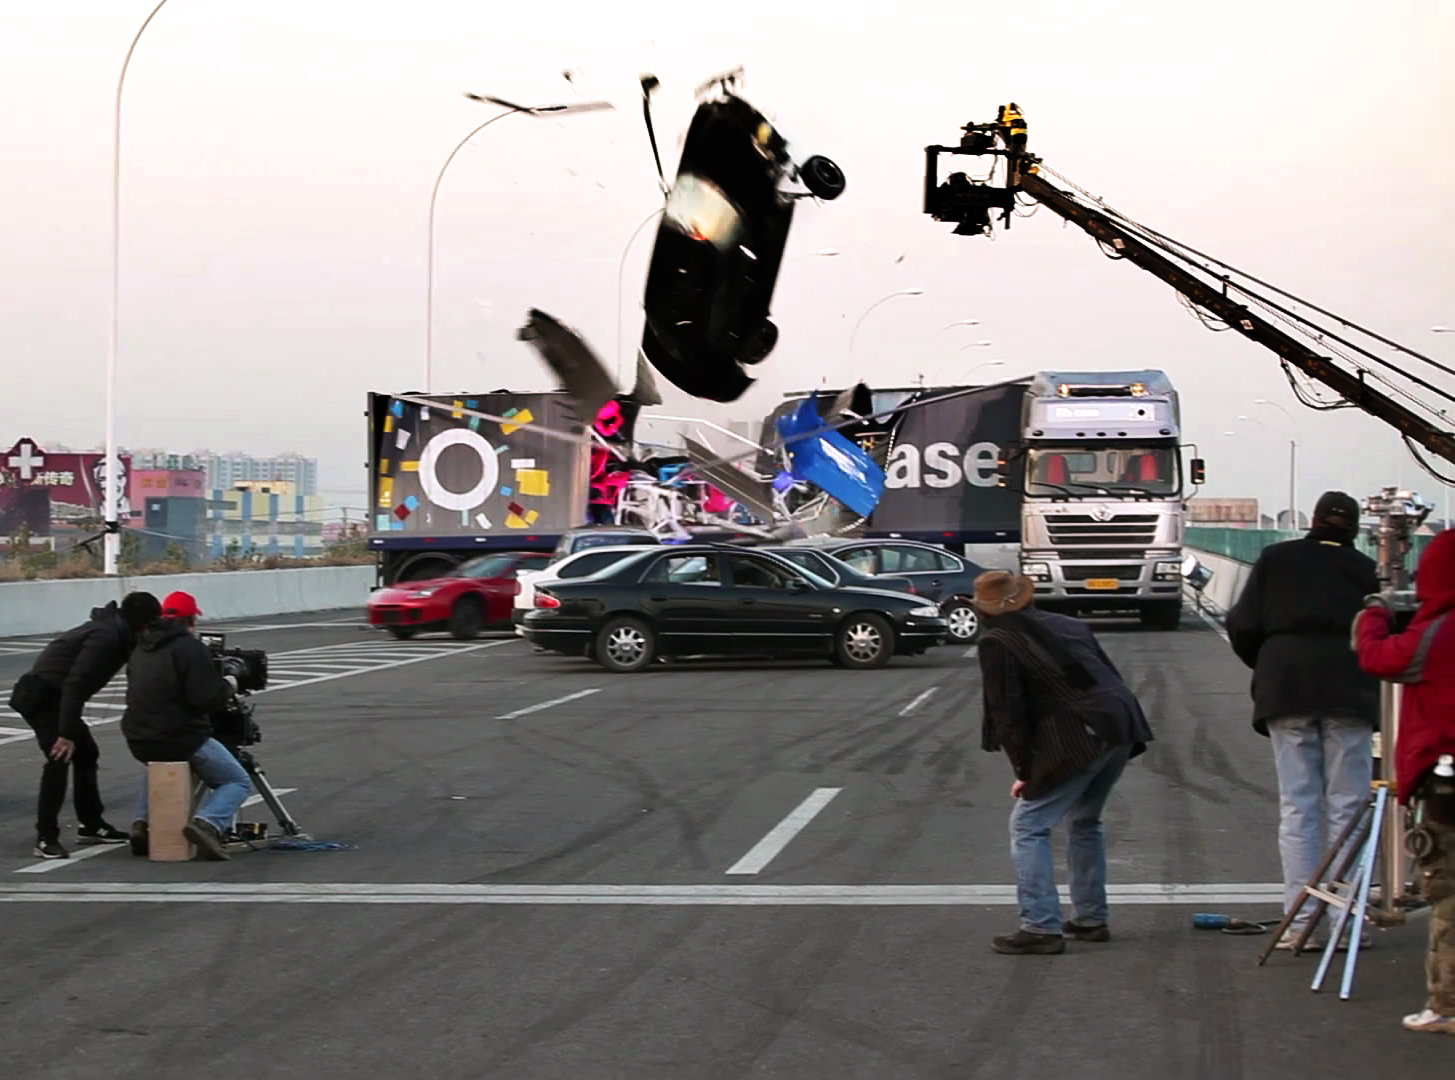 Action Shot Set up on Highway for a Making Of video.